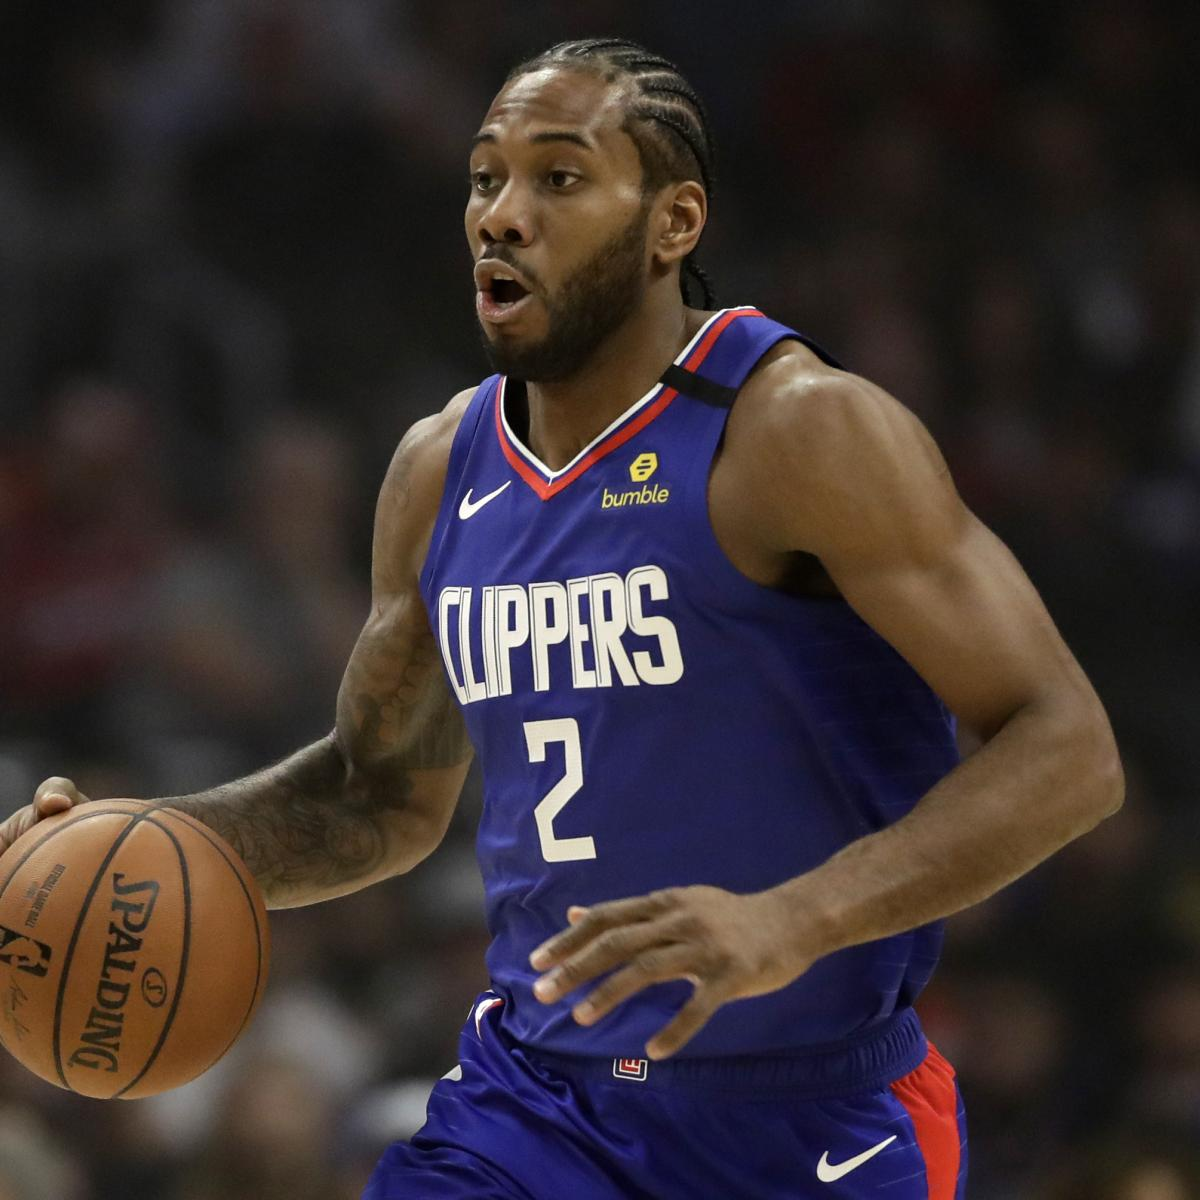 Kawhi Leonard Says 'Time Is Now' for Clippers to Improve After Loss to Kings